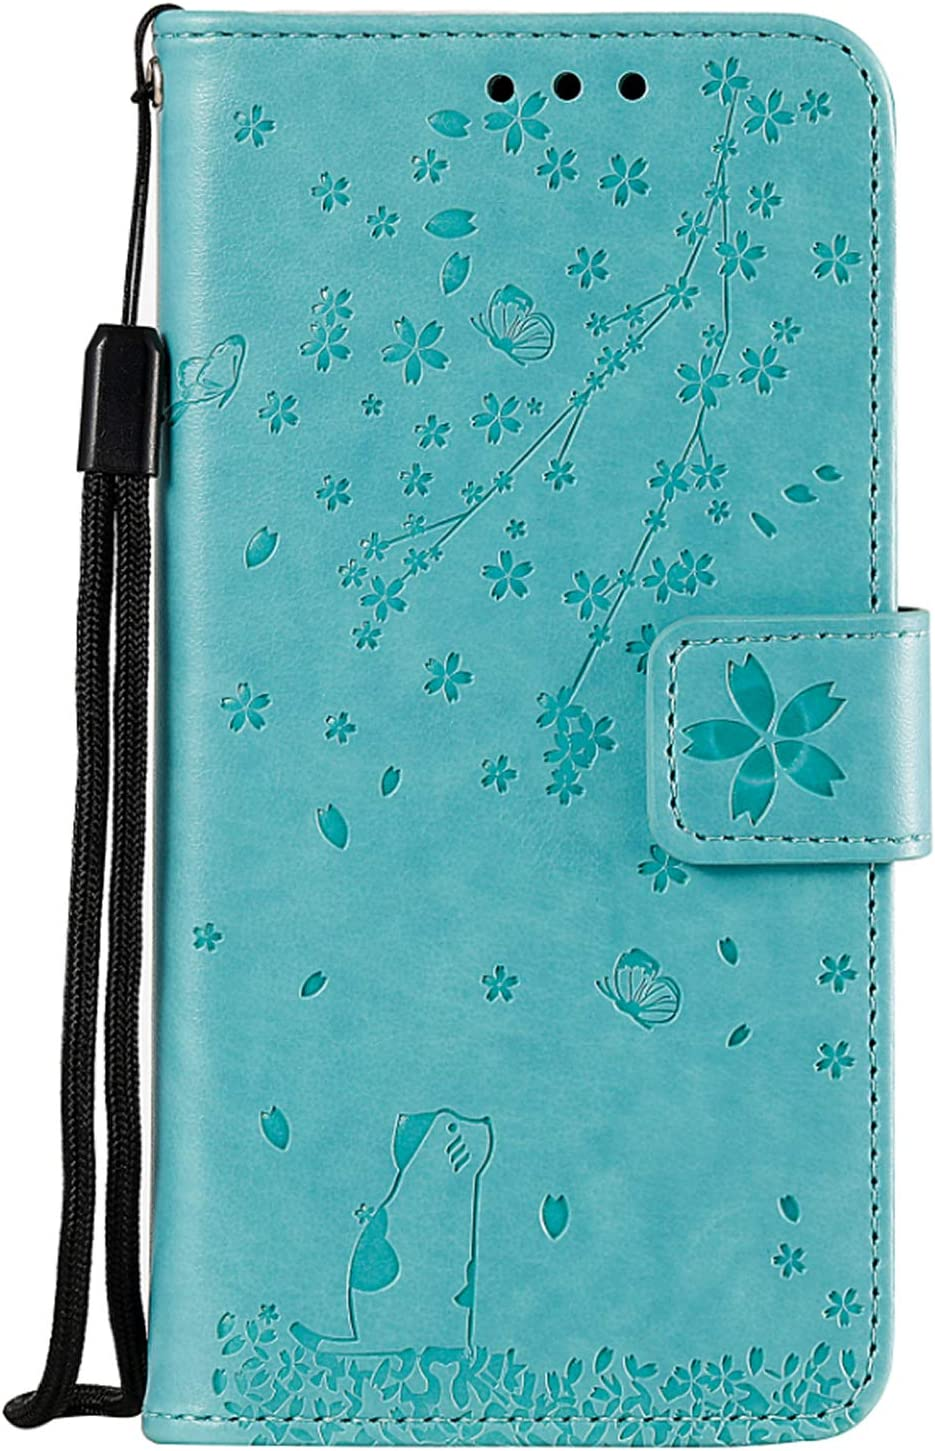 Miagon Embossing Case for Huawei P30 Leather Sales Pro Wa Cheap super special price Premium Flip